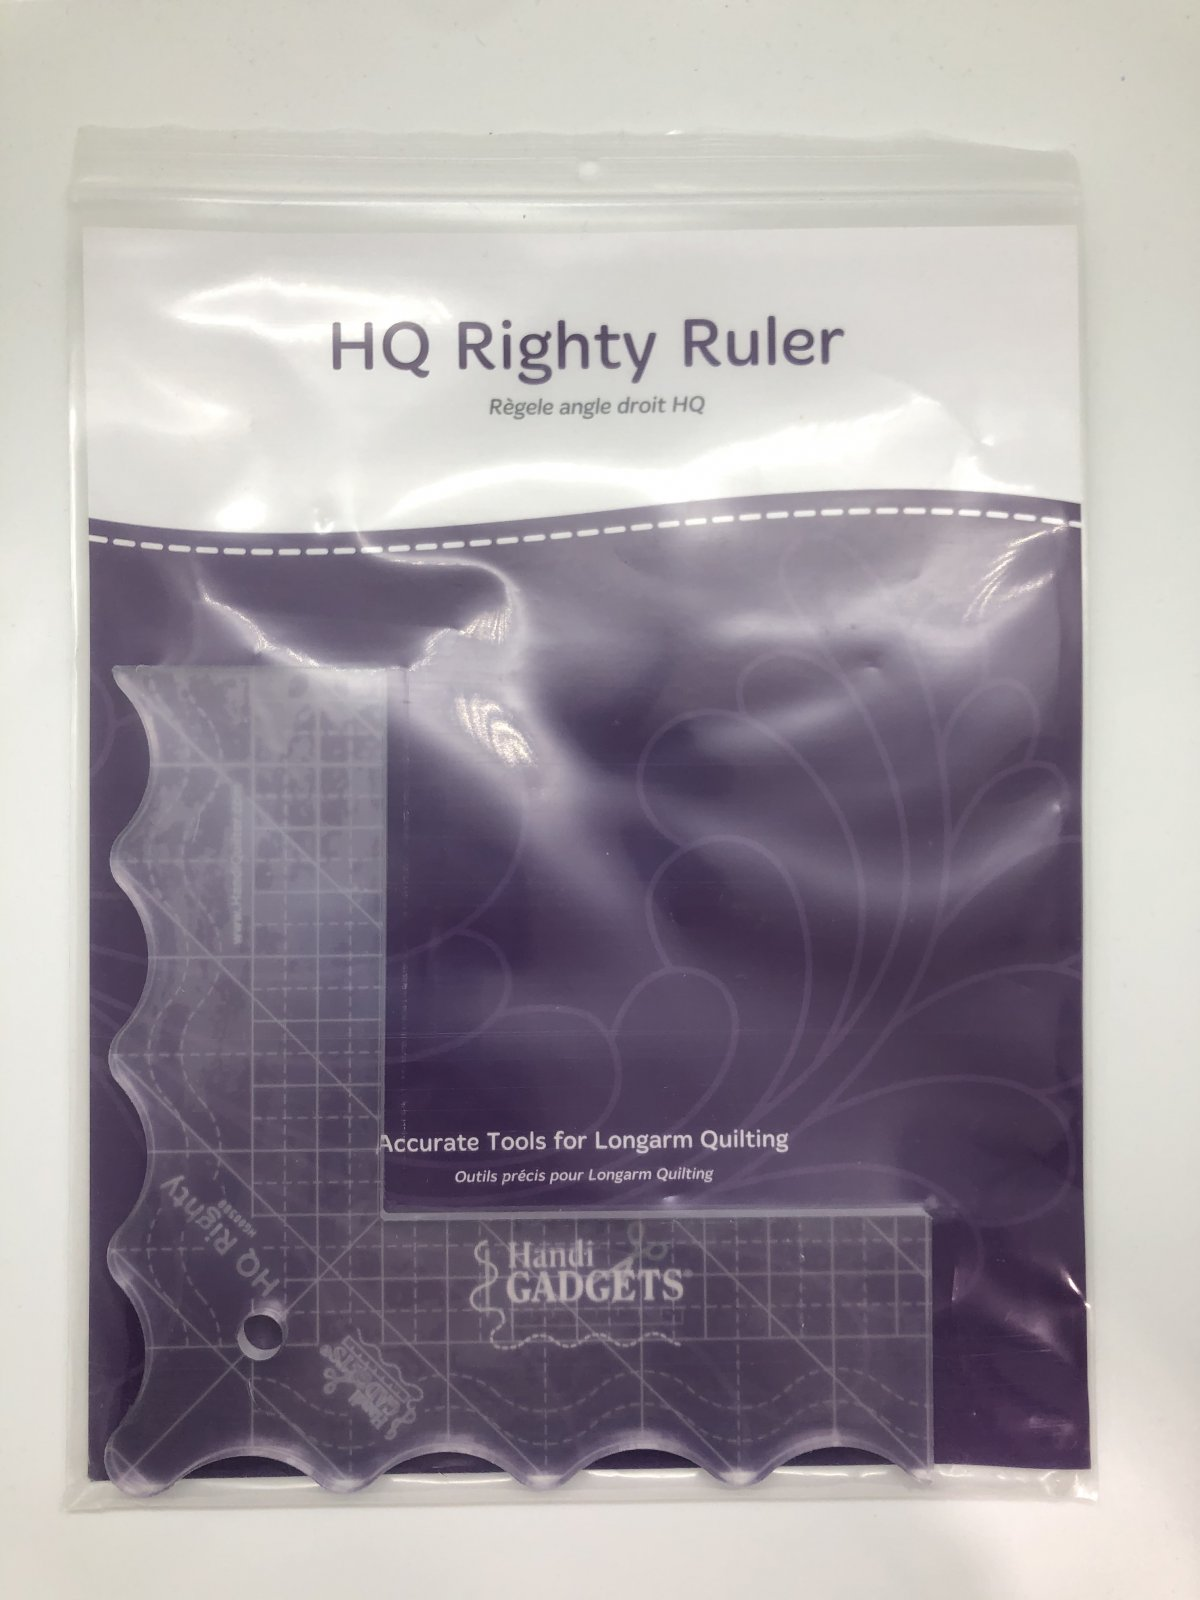 HQ Righty Ruler